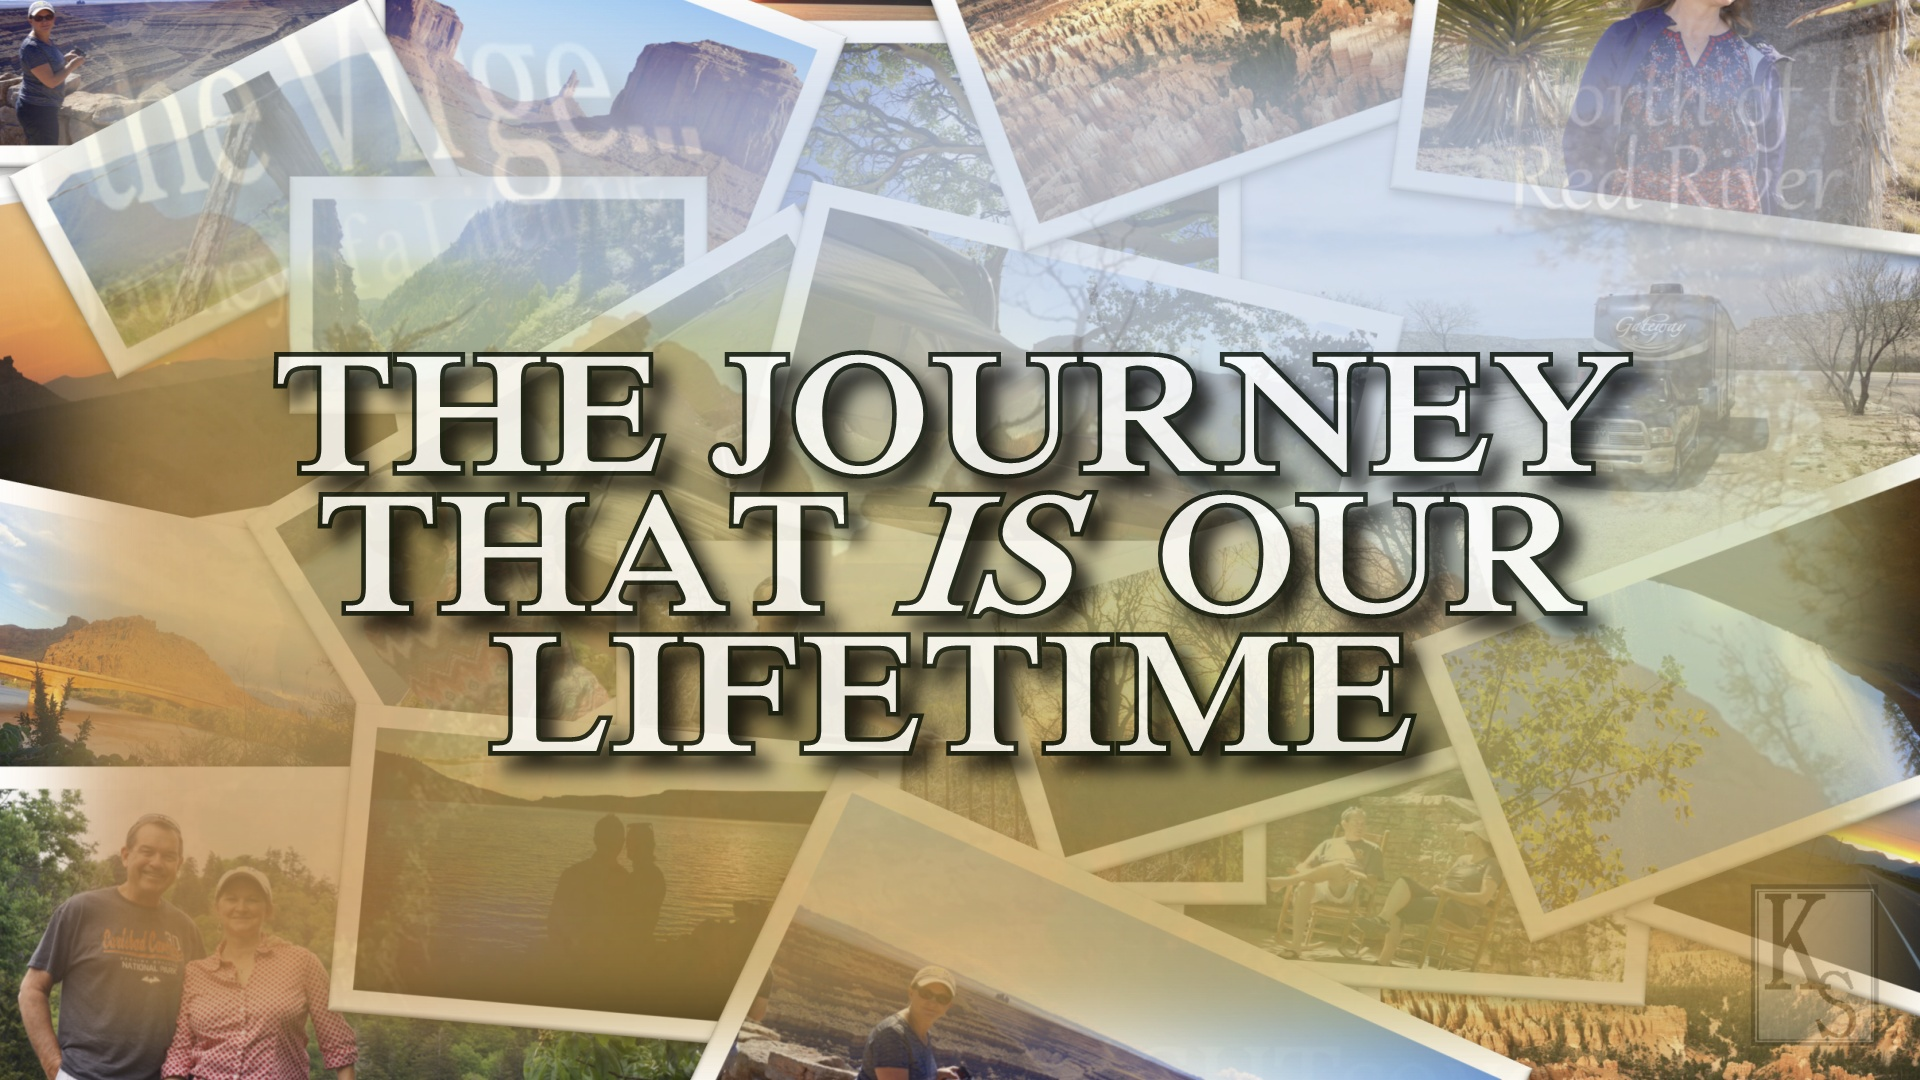 THE JOURNEY THAT IS OUR LIFETIME